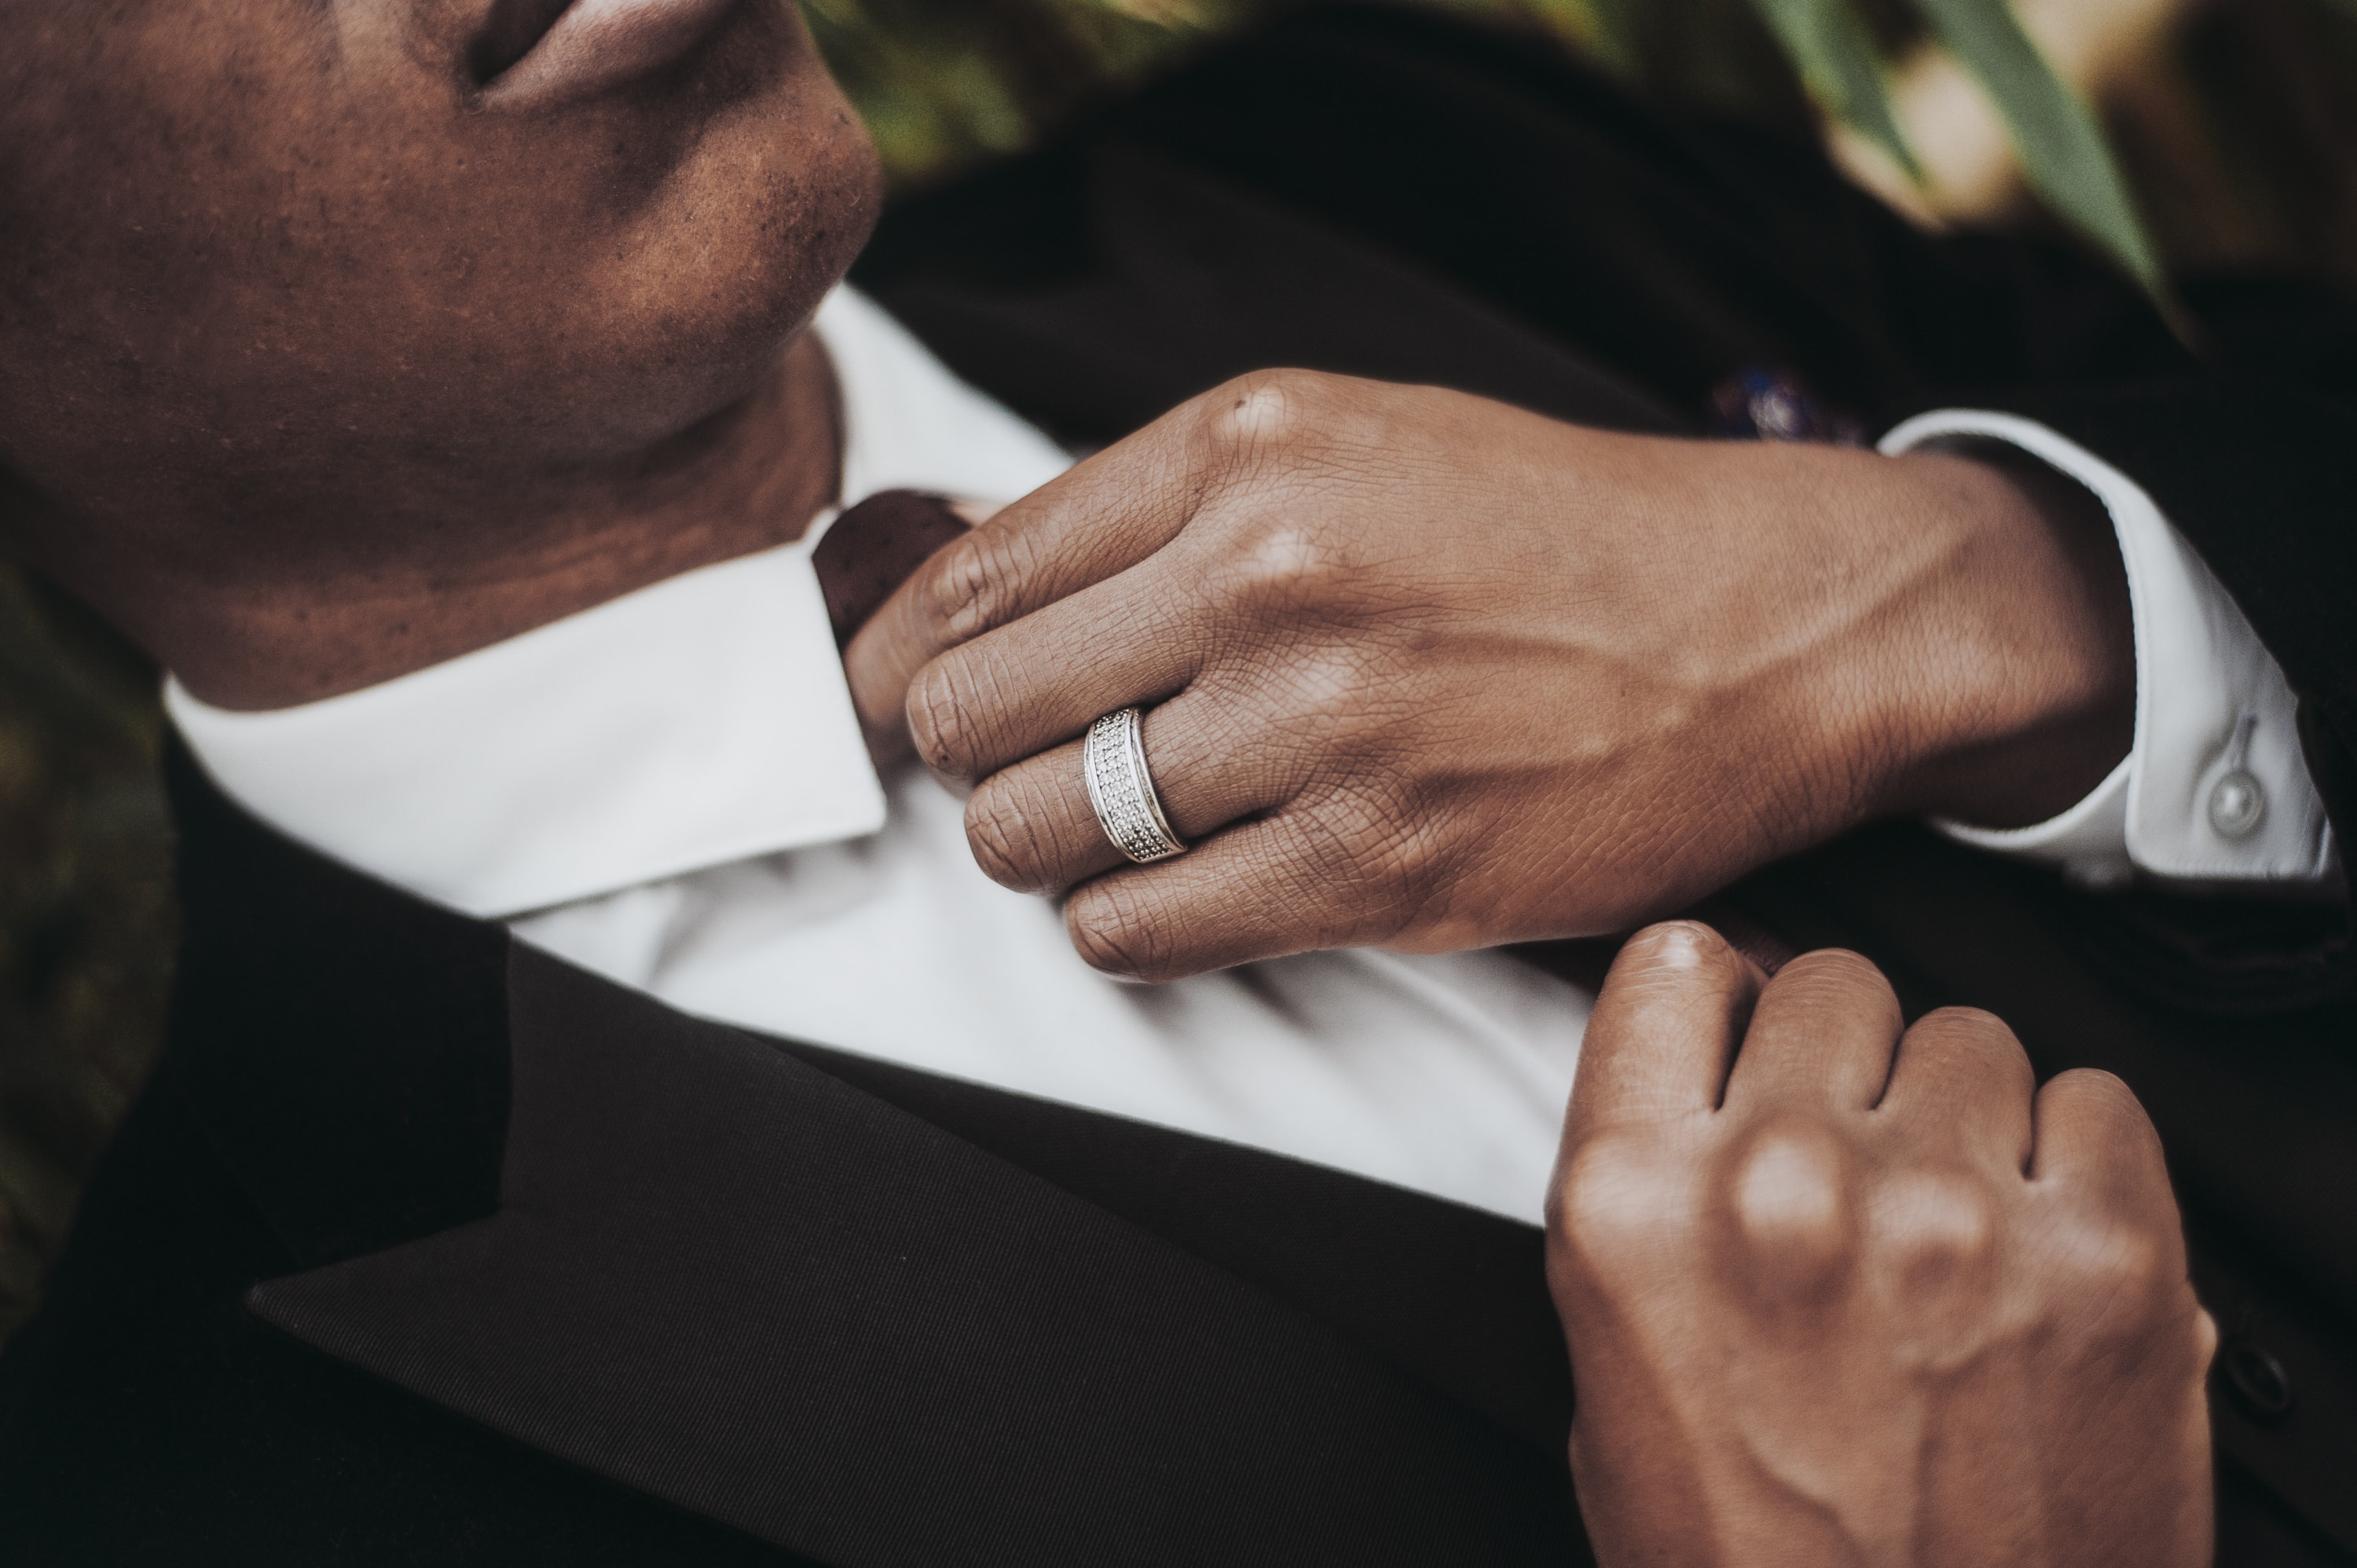 Groom adjusts his tie against white shirt and black suit